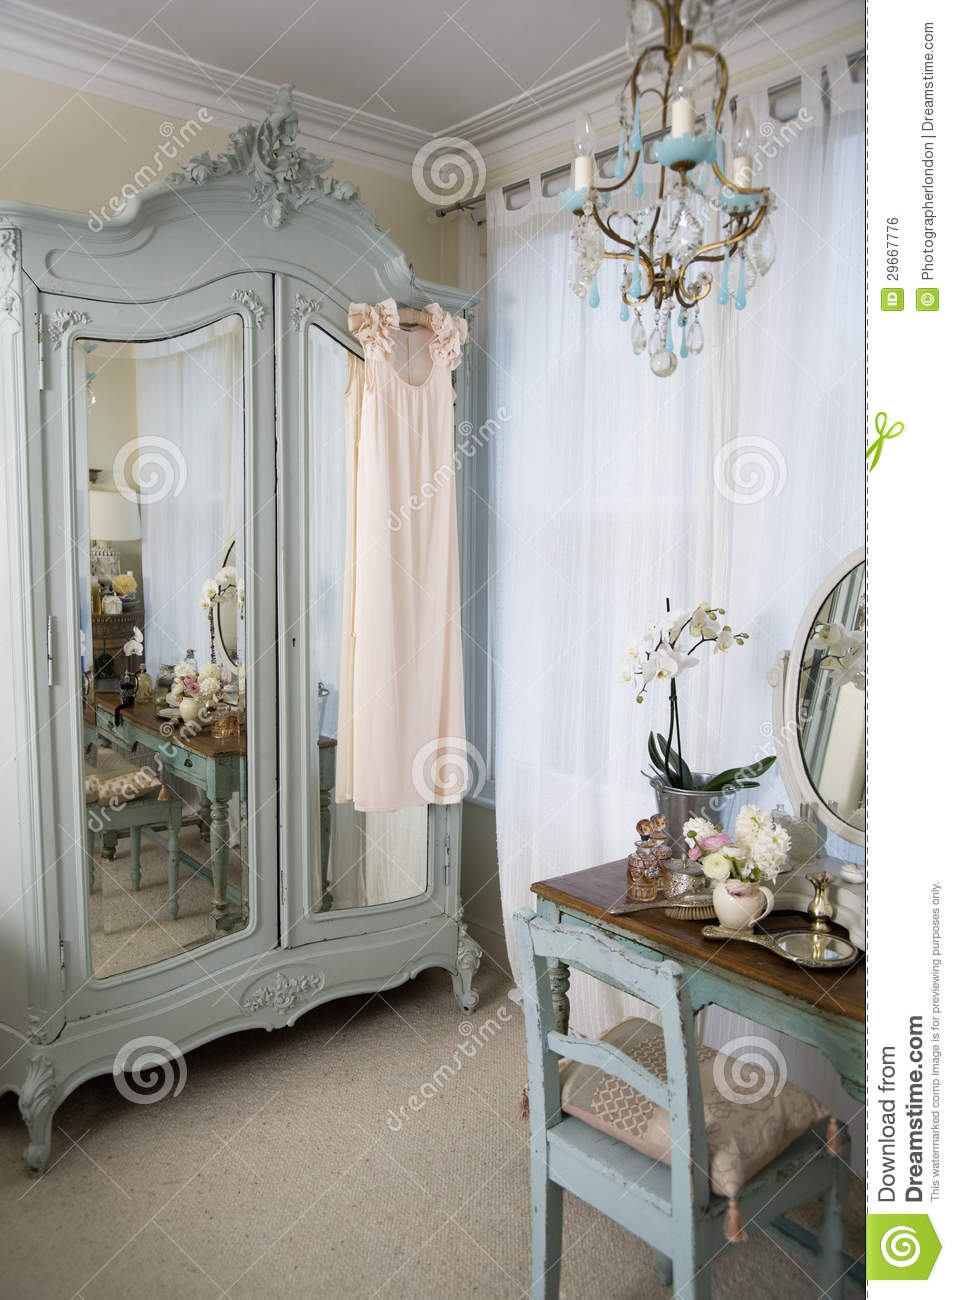 Dressing Table In Oldfashioned Room Royalty Free Stock